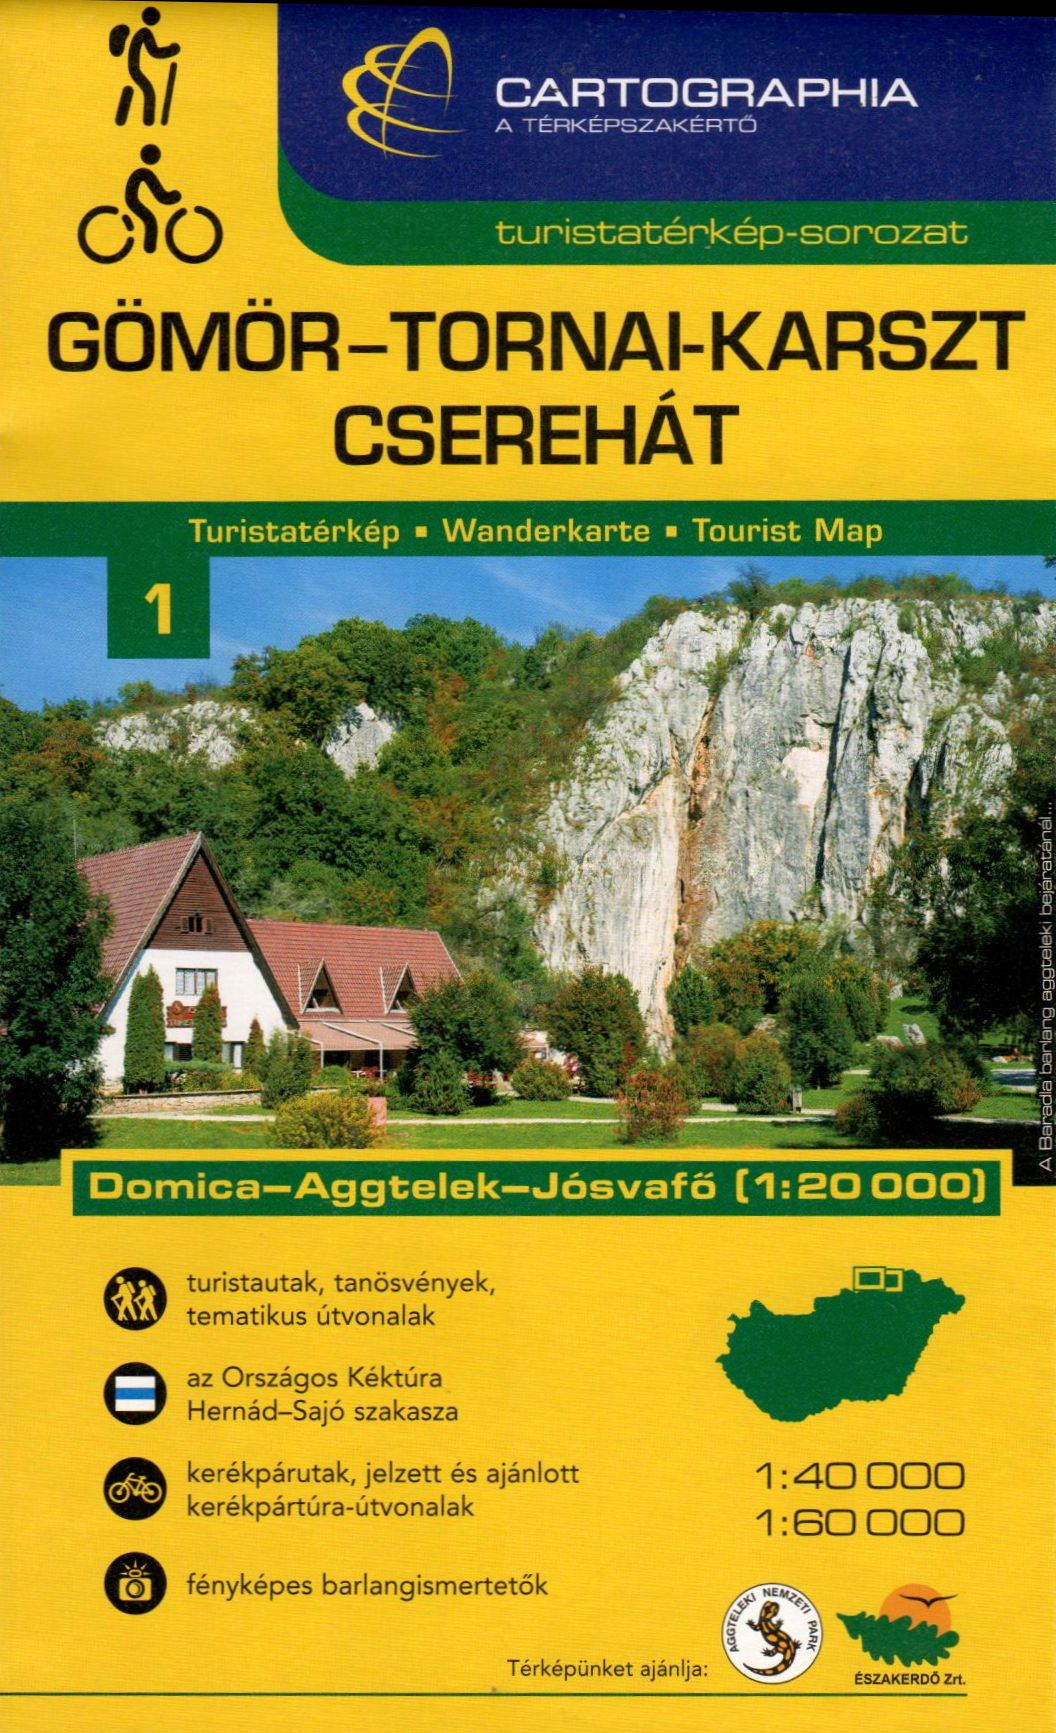 Cserehát (area between Hernád and Sajó rivers) tourist biking map is  an inset map on the Gömör-Torna (Aggtelek) karst map